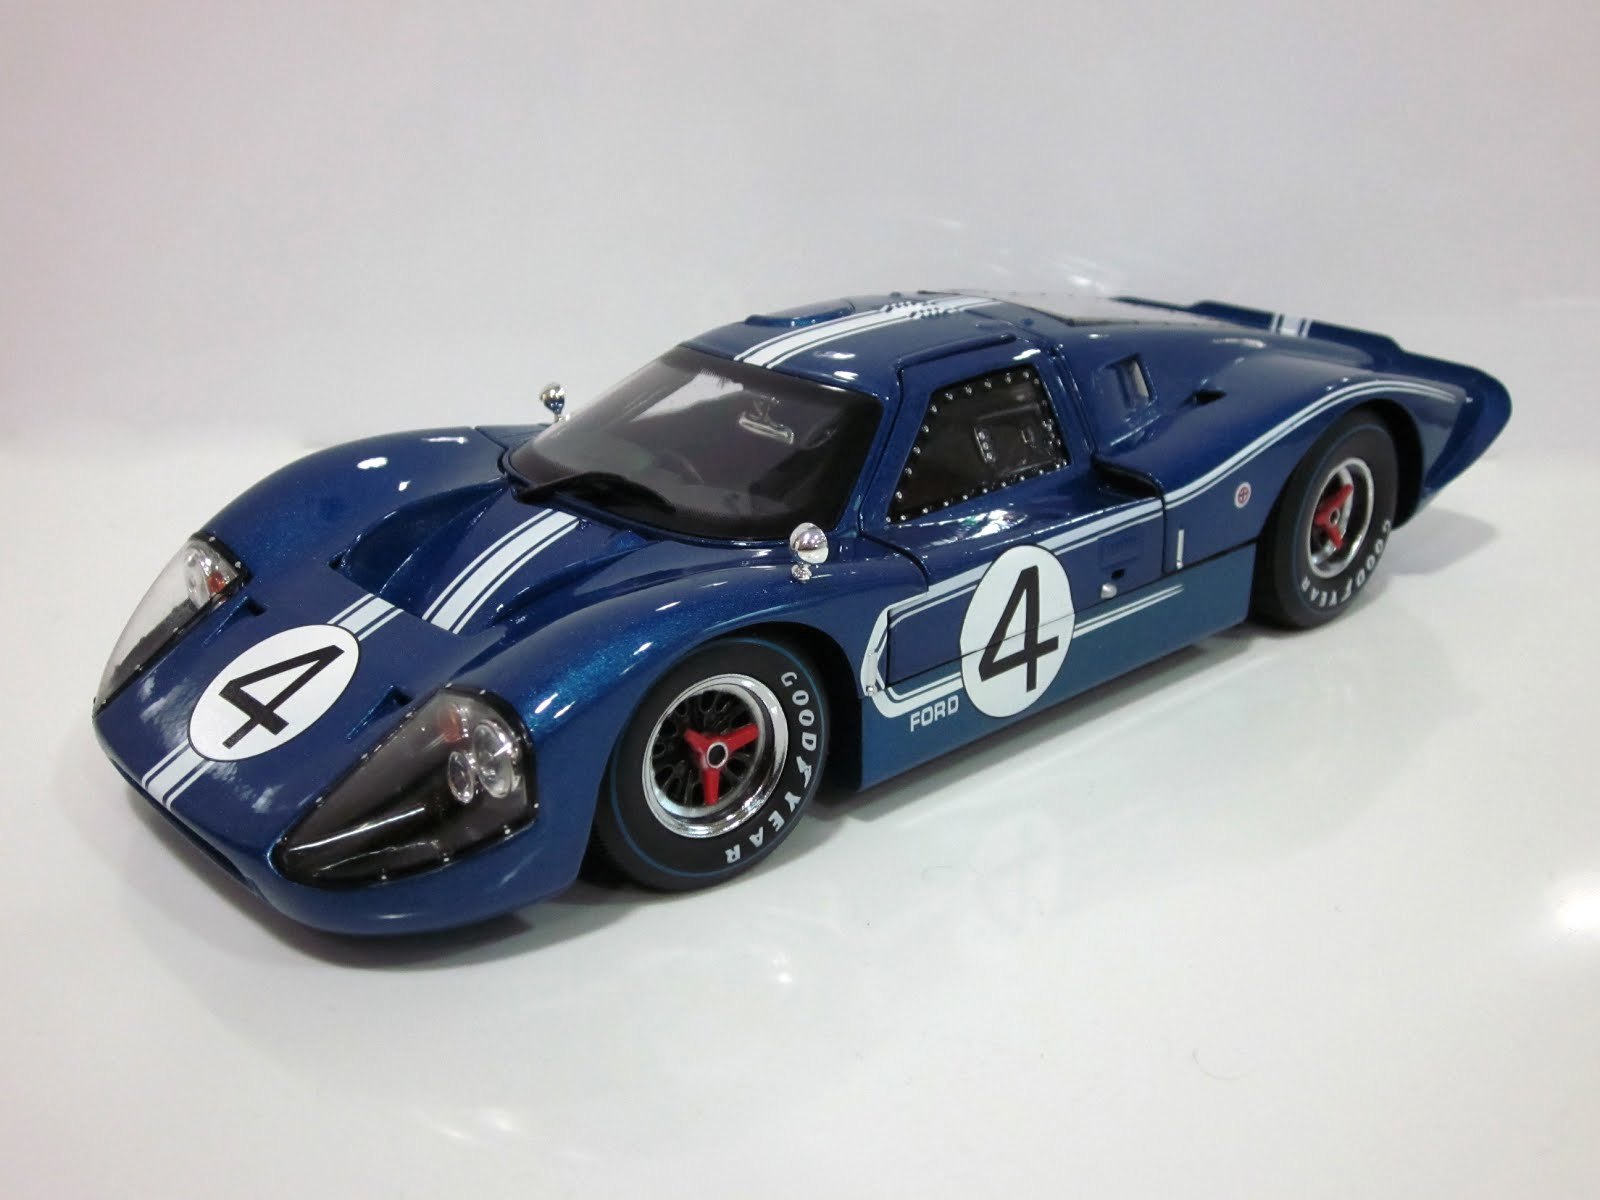 Ford GT40 Mk IV J-08 '67 - Shelby Collectibles